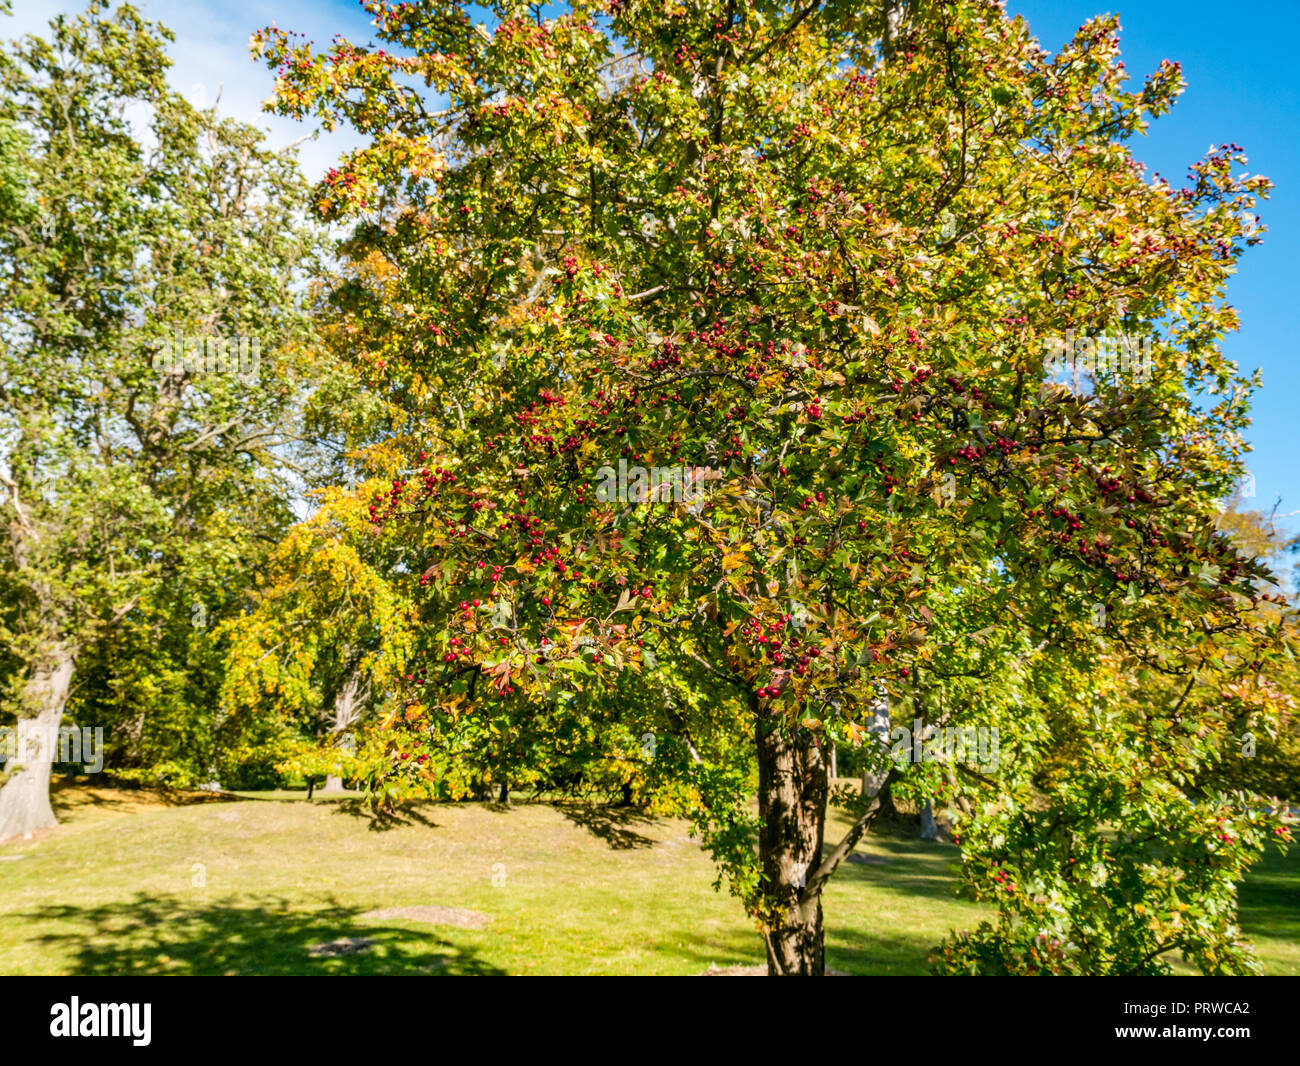 Red hawthorn berries on tree, Crataegus, in Autumn sunlight, Gosford House Pleasure Grounds and Policies, East Lothian, Scotland, UK - Stock Image